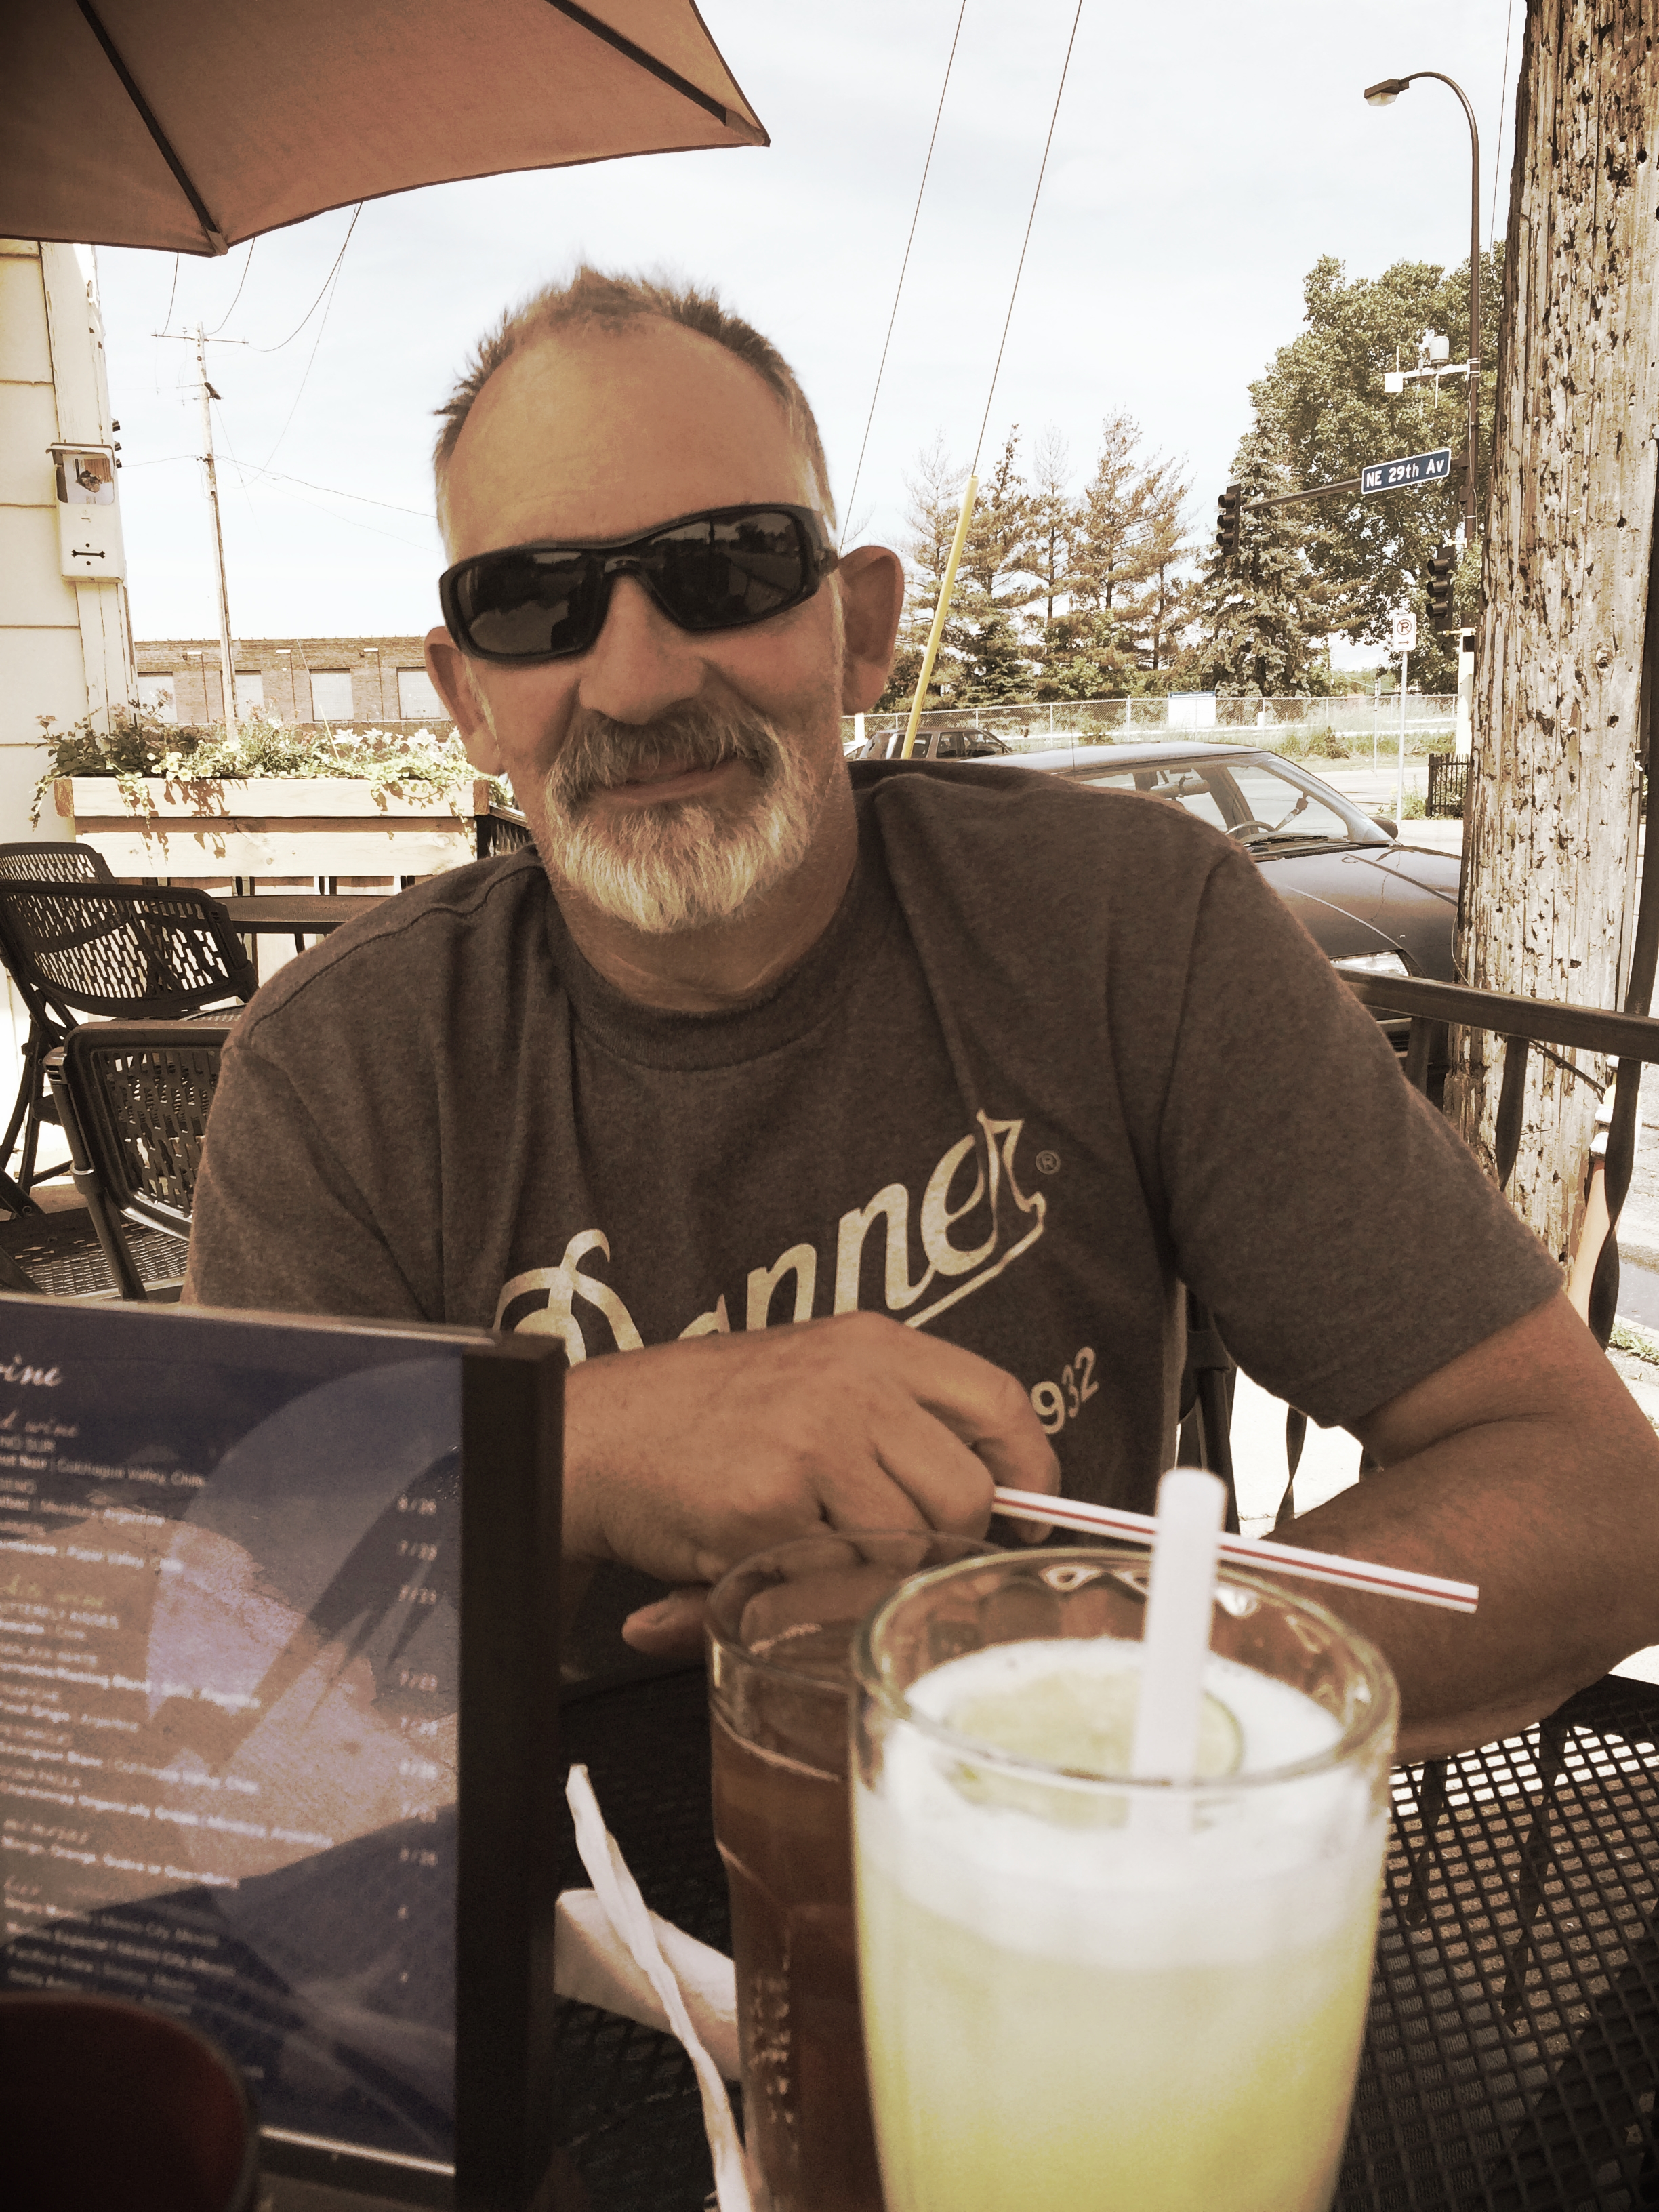 Dad staying cool in those shades and letting me take him out to lunch after our road trip back to MPLS